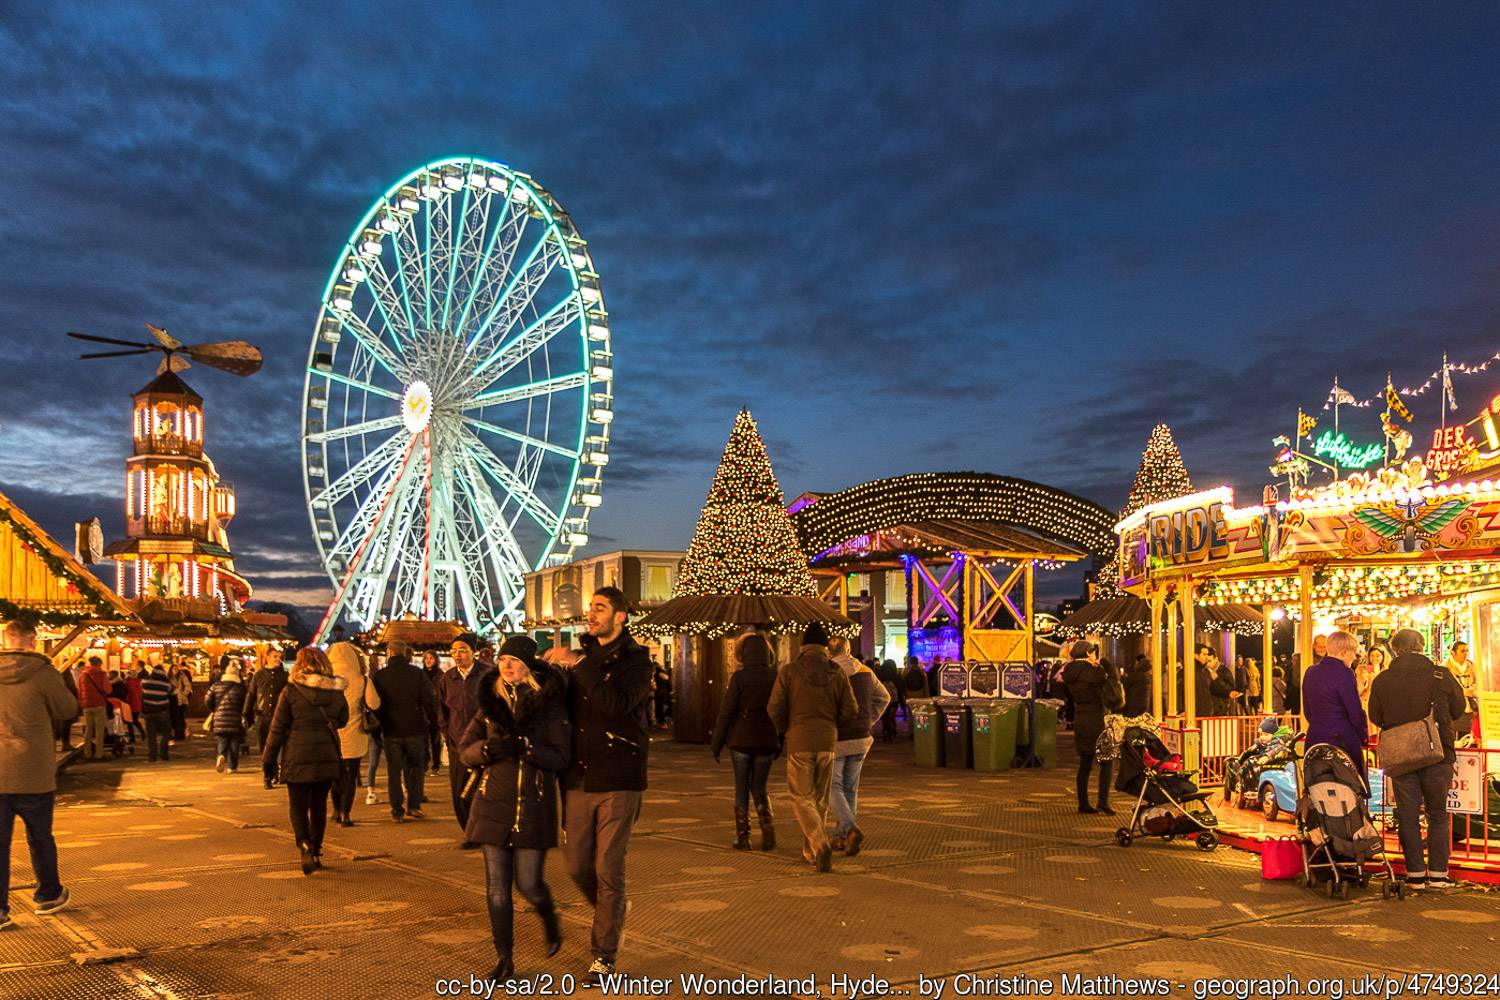 A photo of a bright Ferris wheel, Christmas trees, and a carousel at the annual London festival, Winter Wonderland.